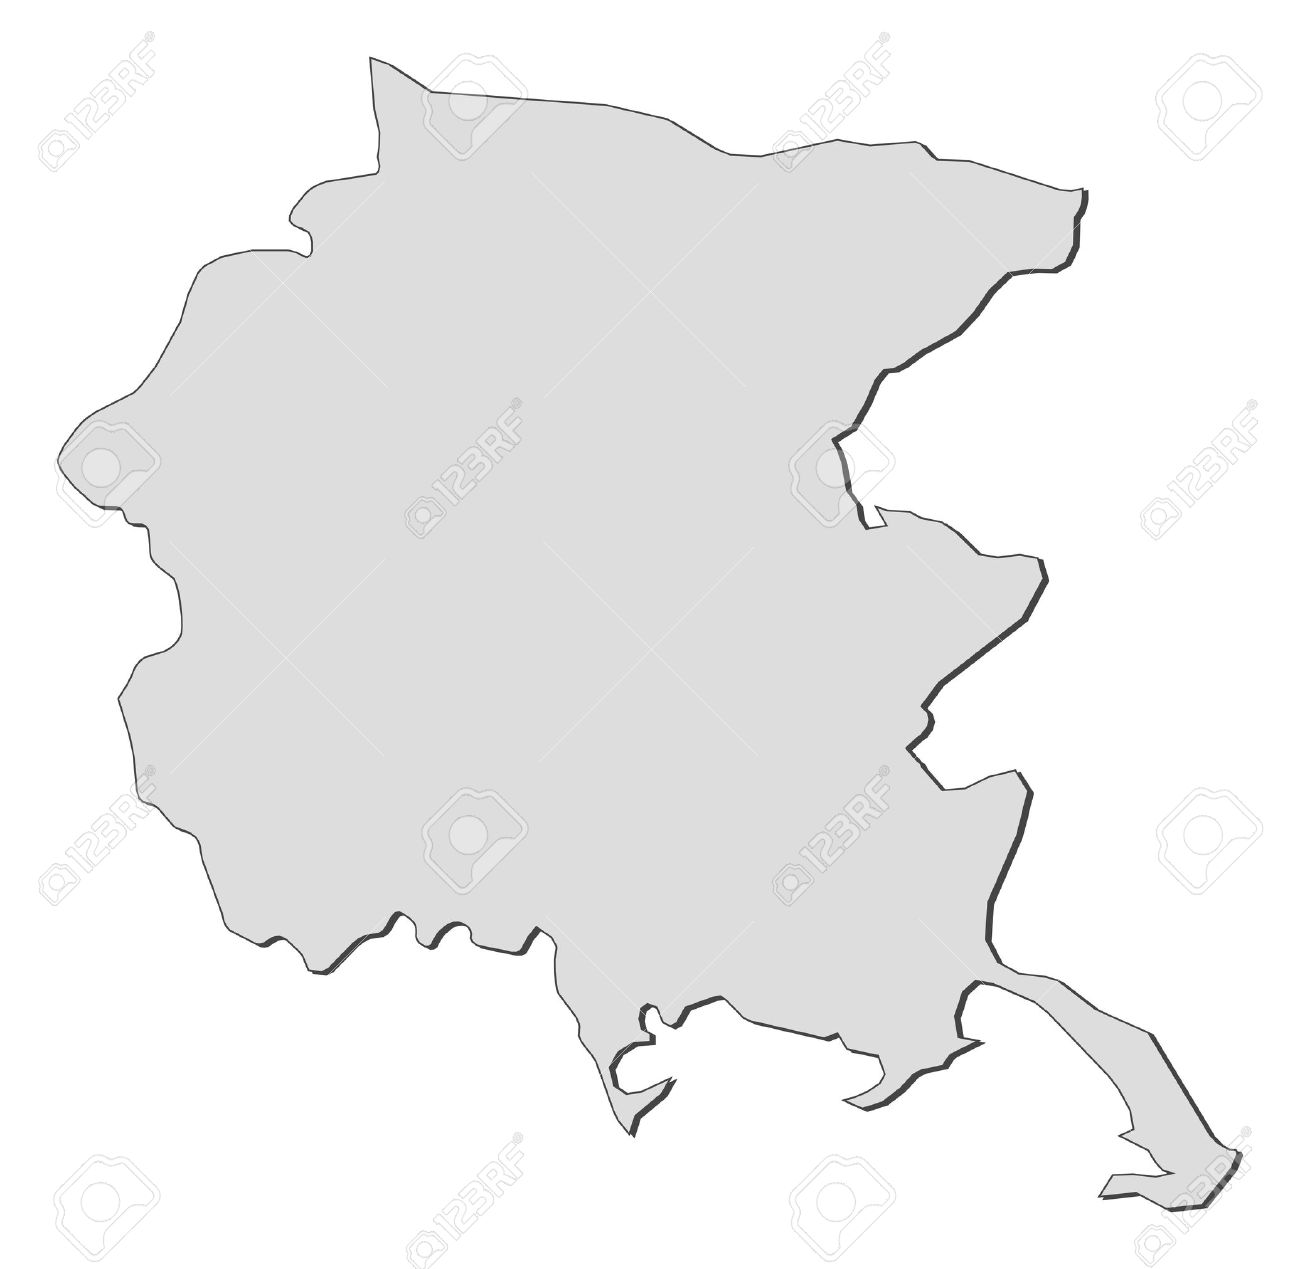 Friuli Italy Map.Map Of Friuli Venezia Giulia A Region Of Italy Royalty Free